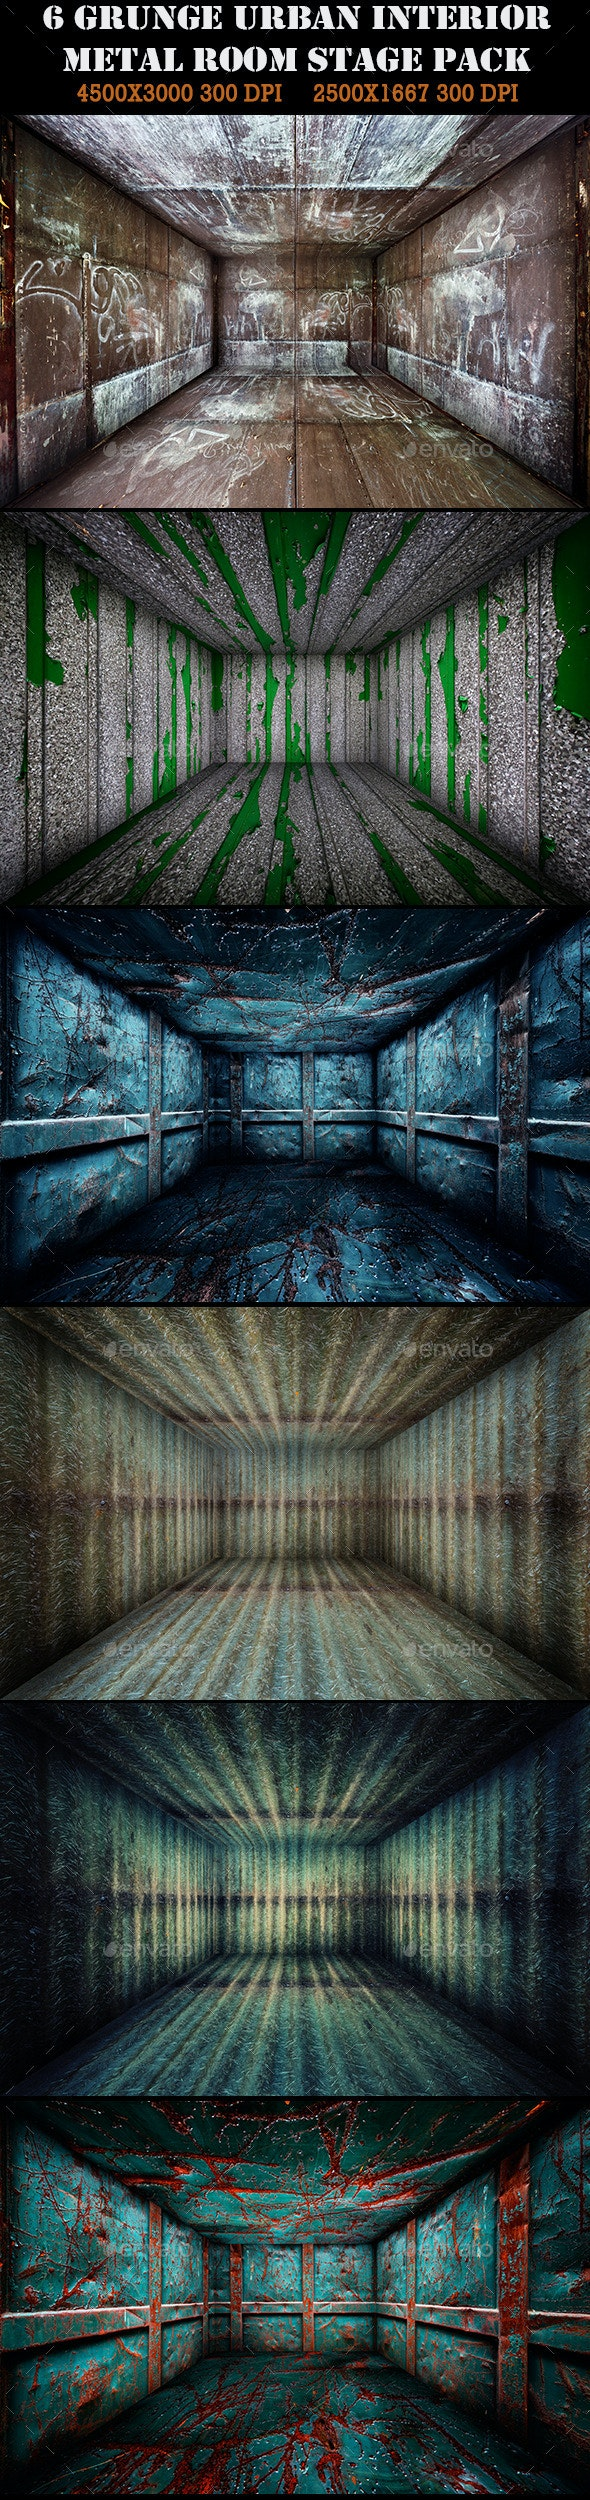 6 Grunge Urban Metal Room Interior Stage Pack - Urban Backgrounds